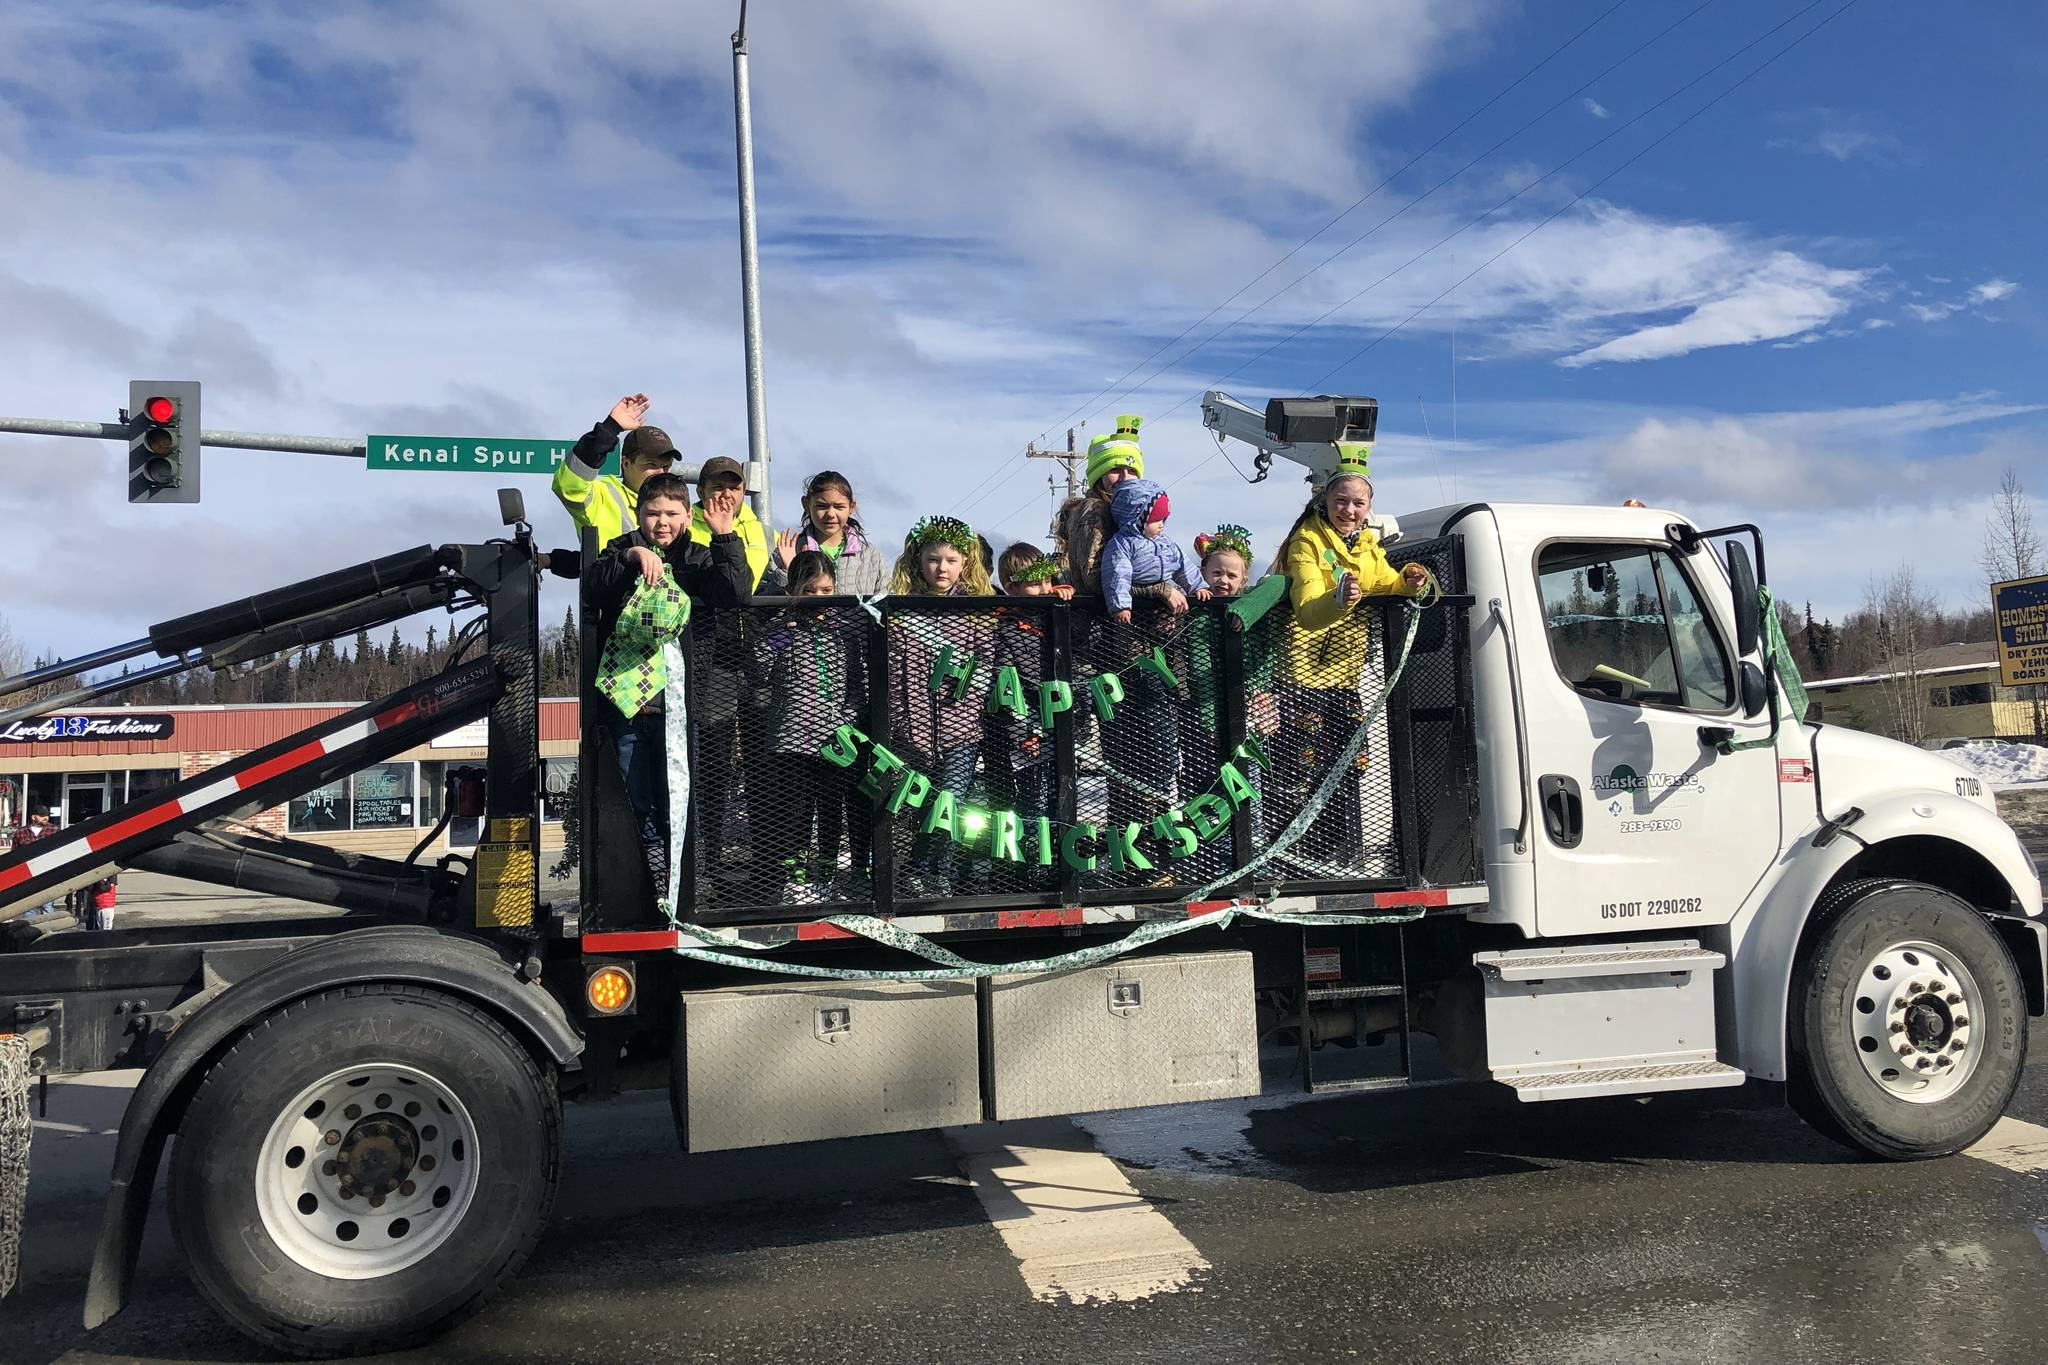 Residents in the parade wave to passerbys at the 28th annual Soldotna St. Patrick's Day Parade on March, 17, 2019, in Soldotna, Alaska. (Photo by Victoria Petersen/Peninsula Clarion)